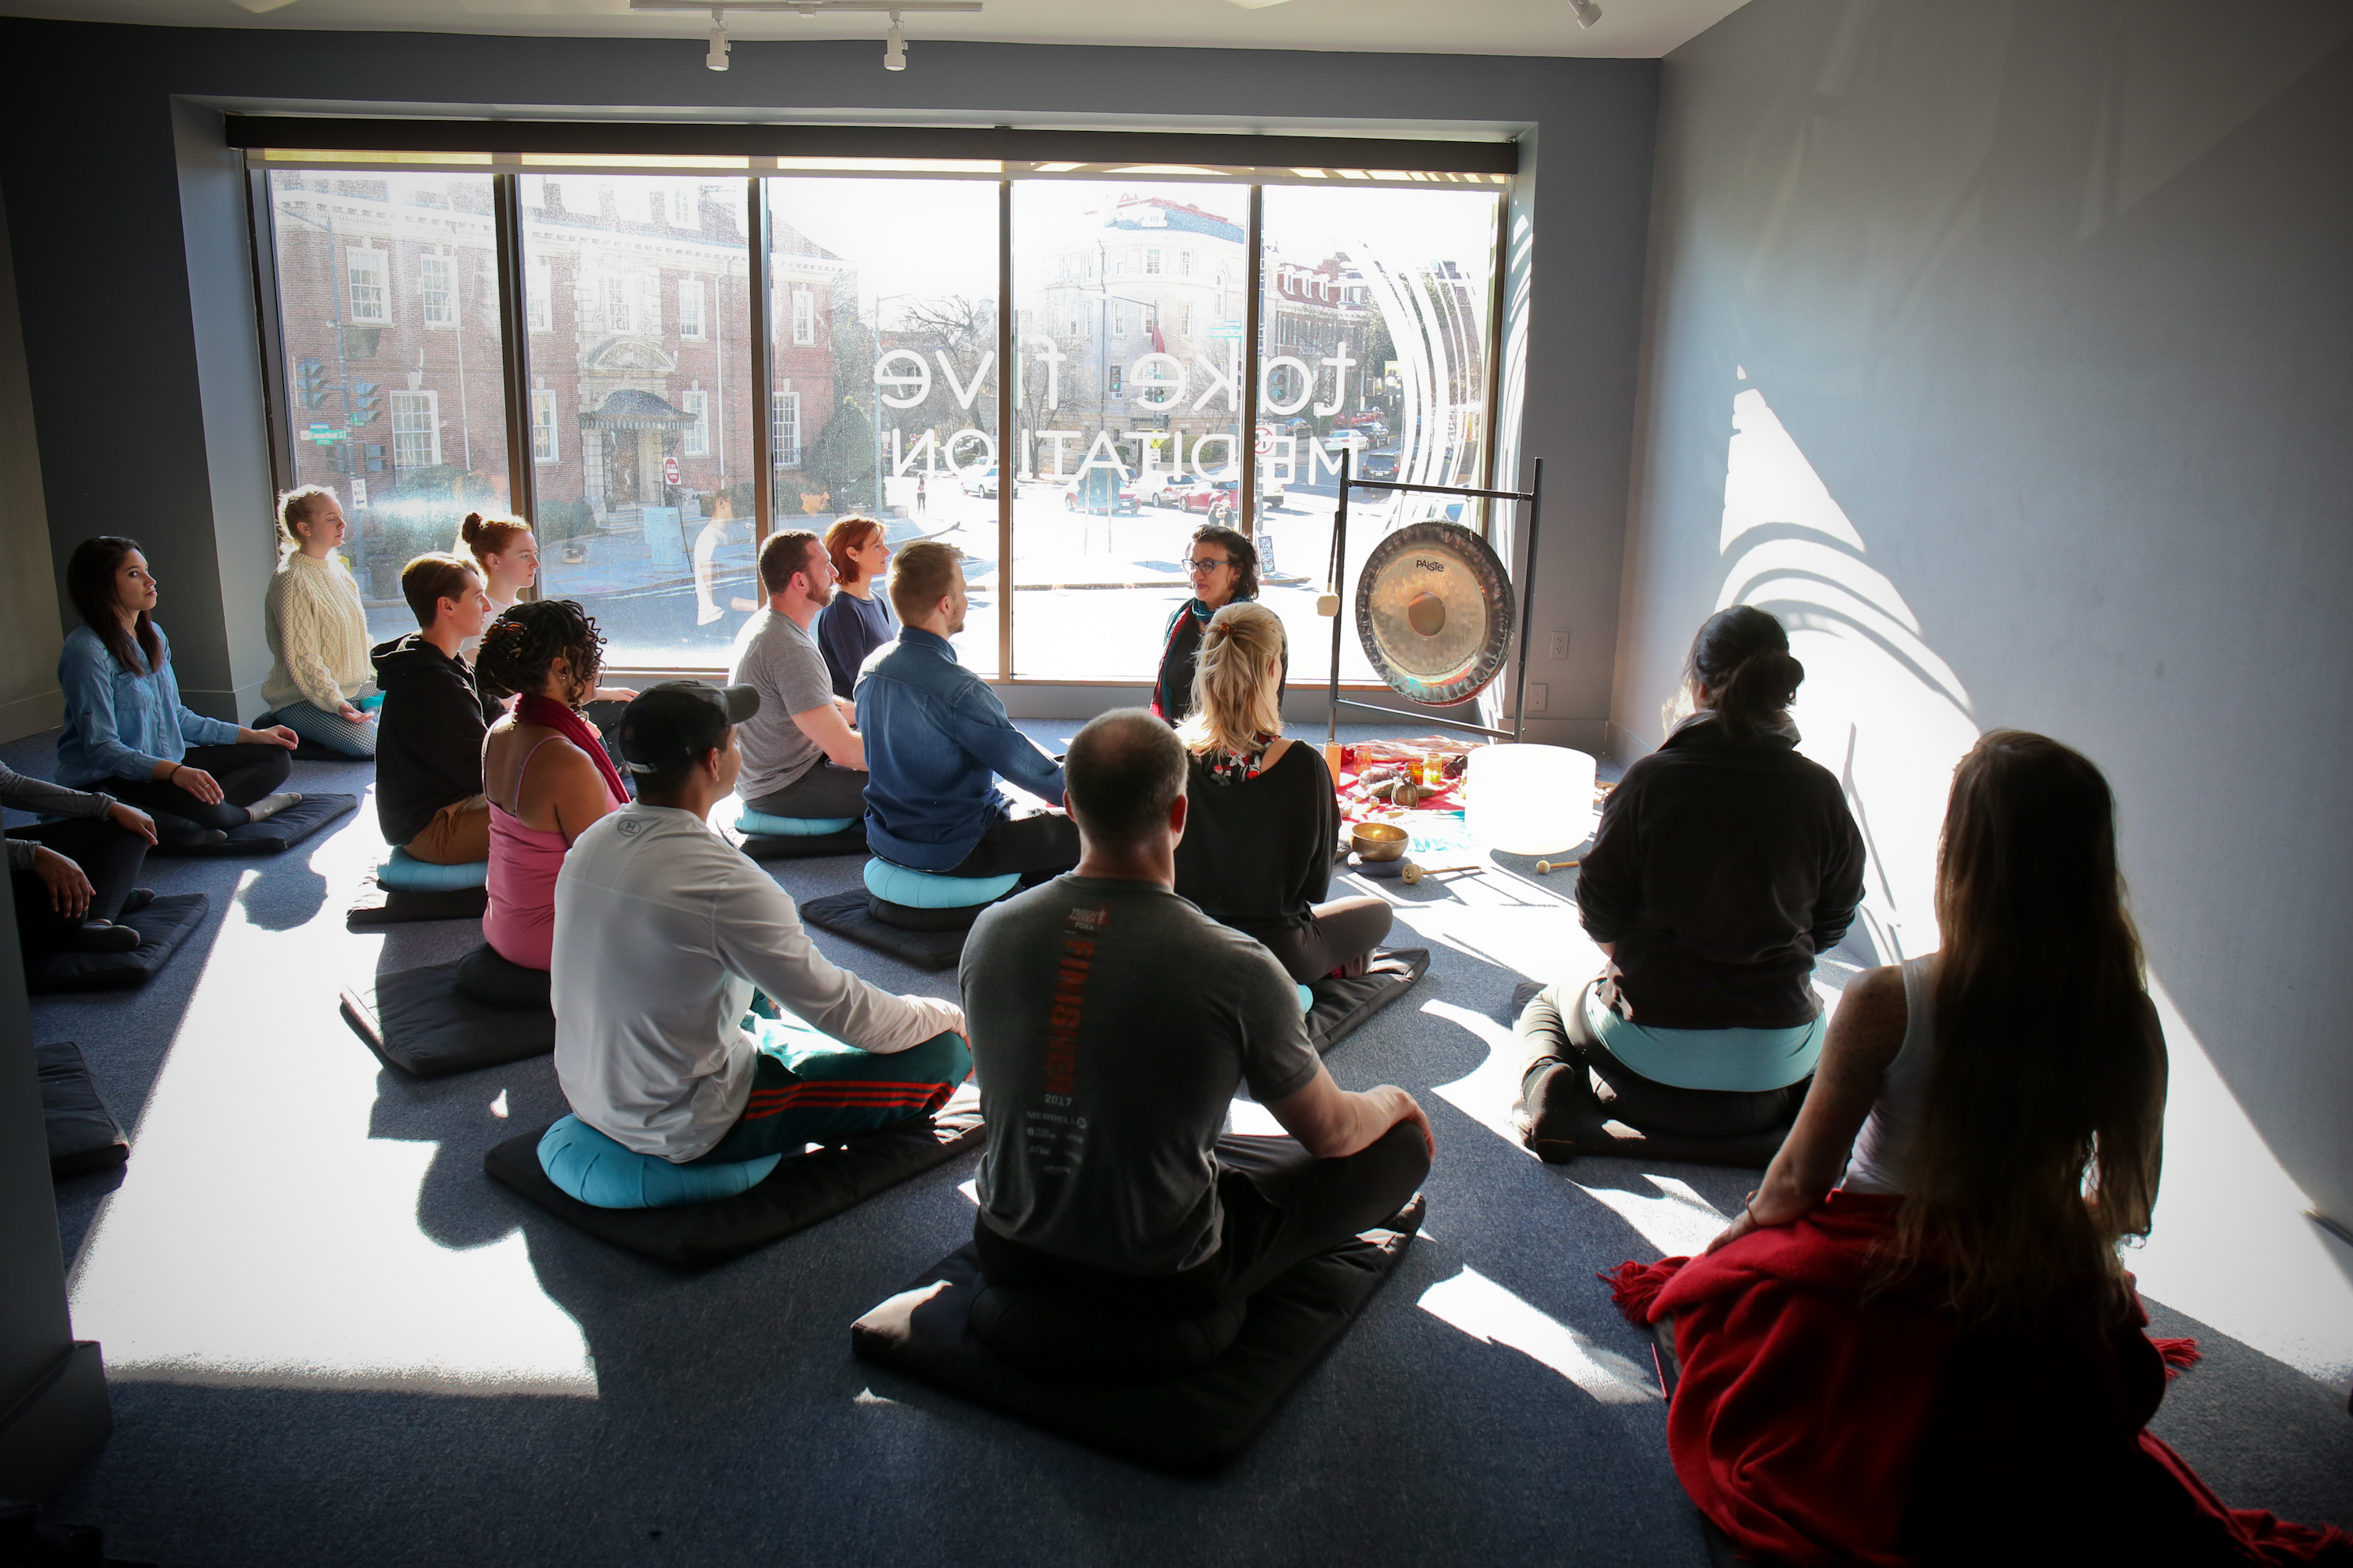 Take Five offers 30-minute meditation classes, 45-minute meditation classes for more advanced students and a 90-minute mind/body connection yoga class. (Image: Ralph Alswang)